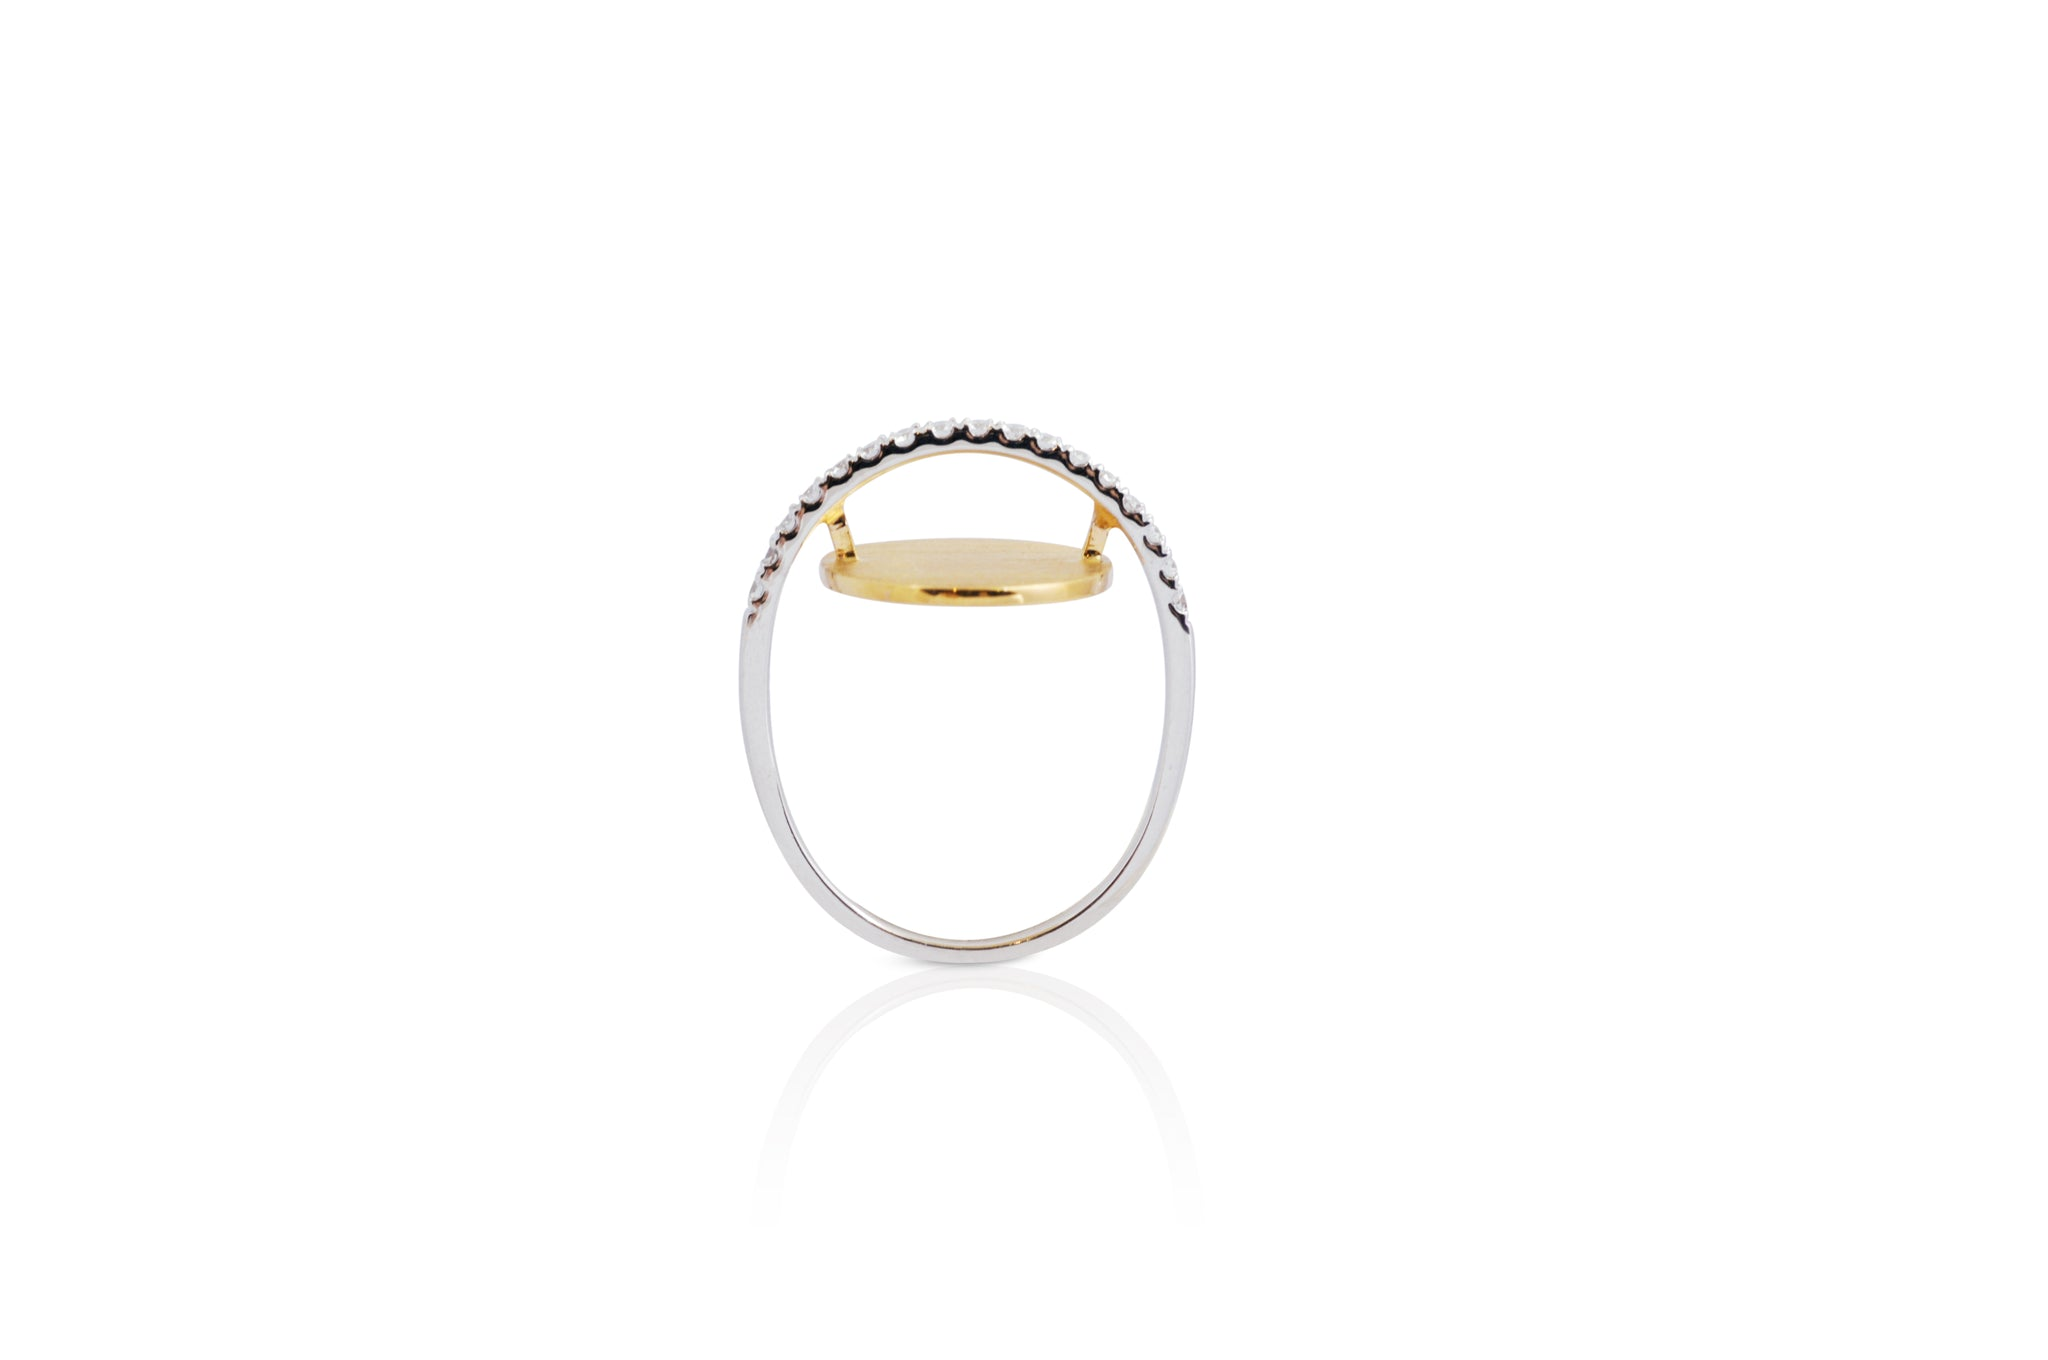 GeoArt Oval Float Diamond Ring [as seen on Mindy Kaling]